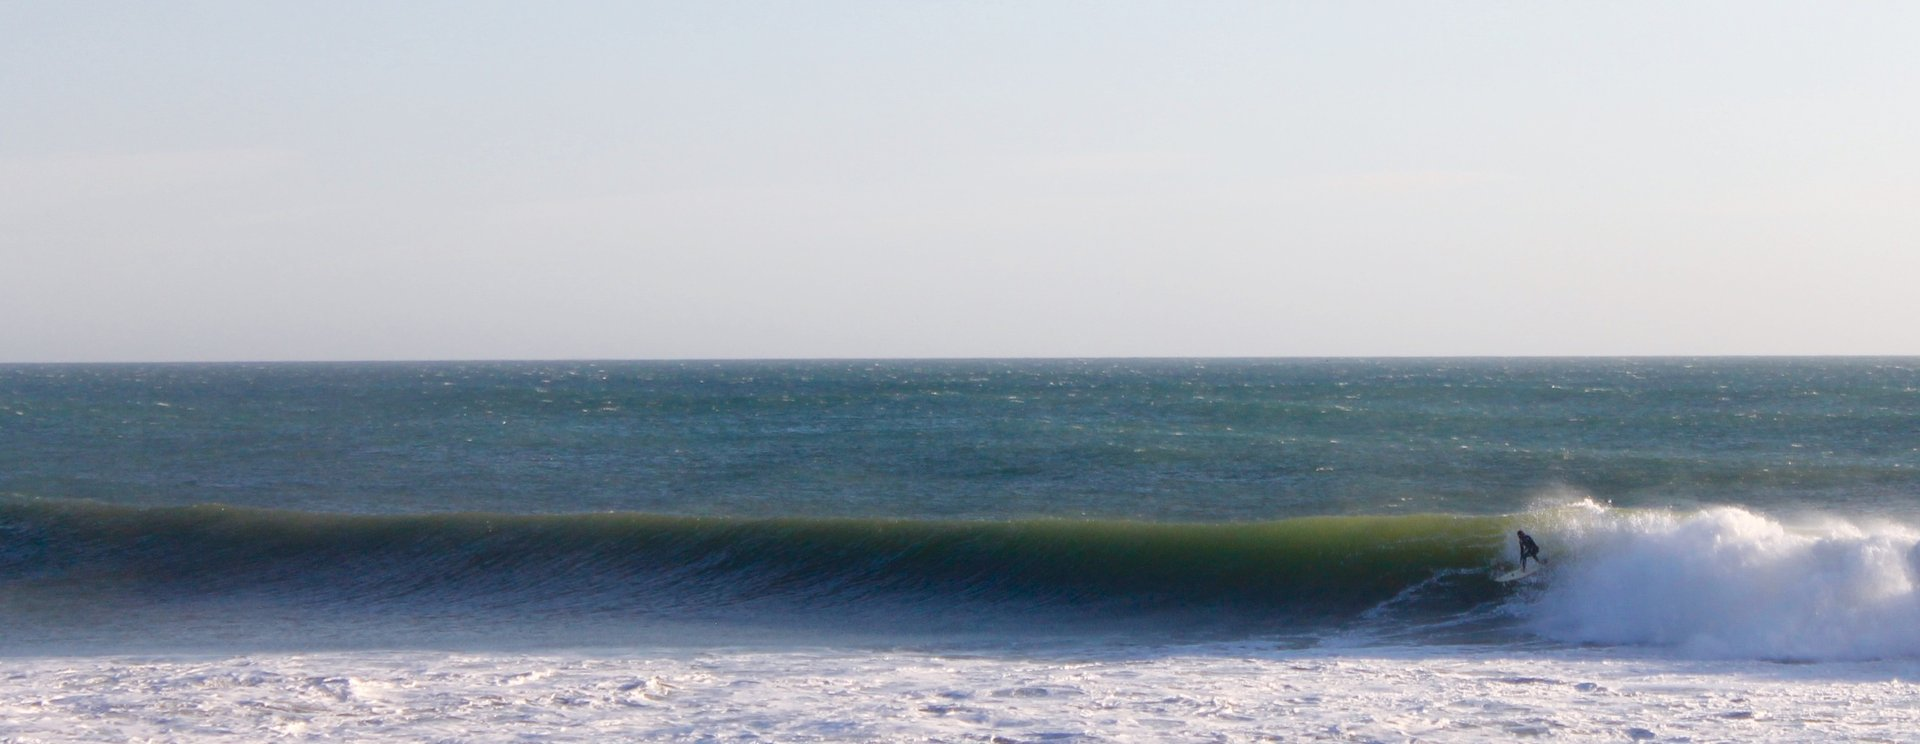 Surf Maroc's photo of Boilers